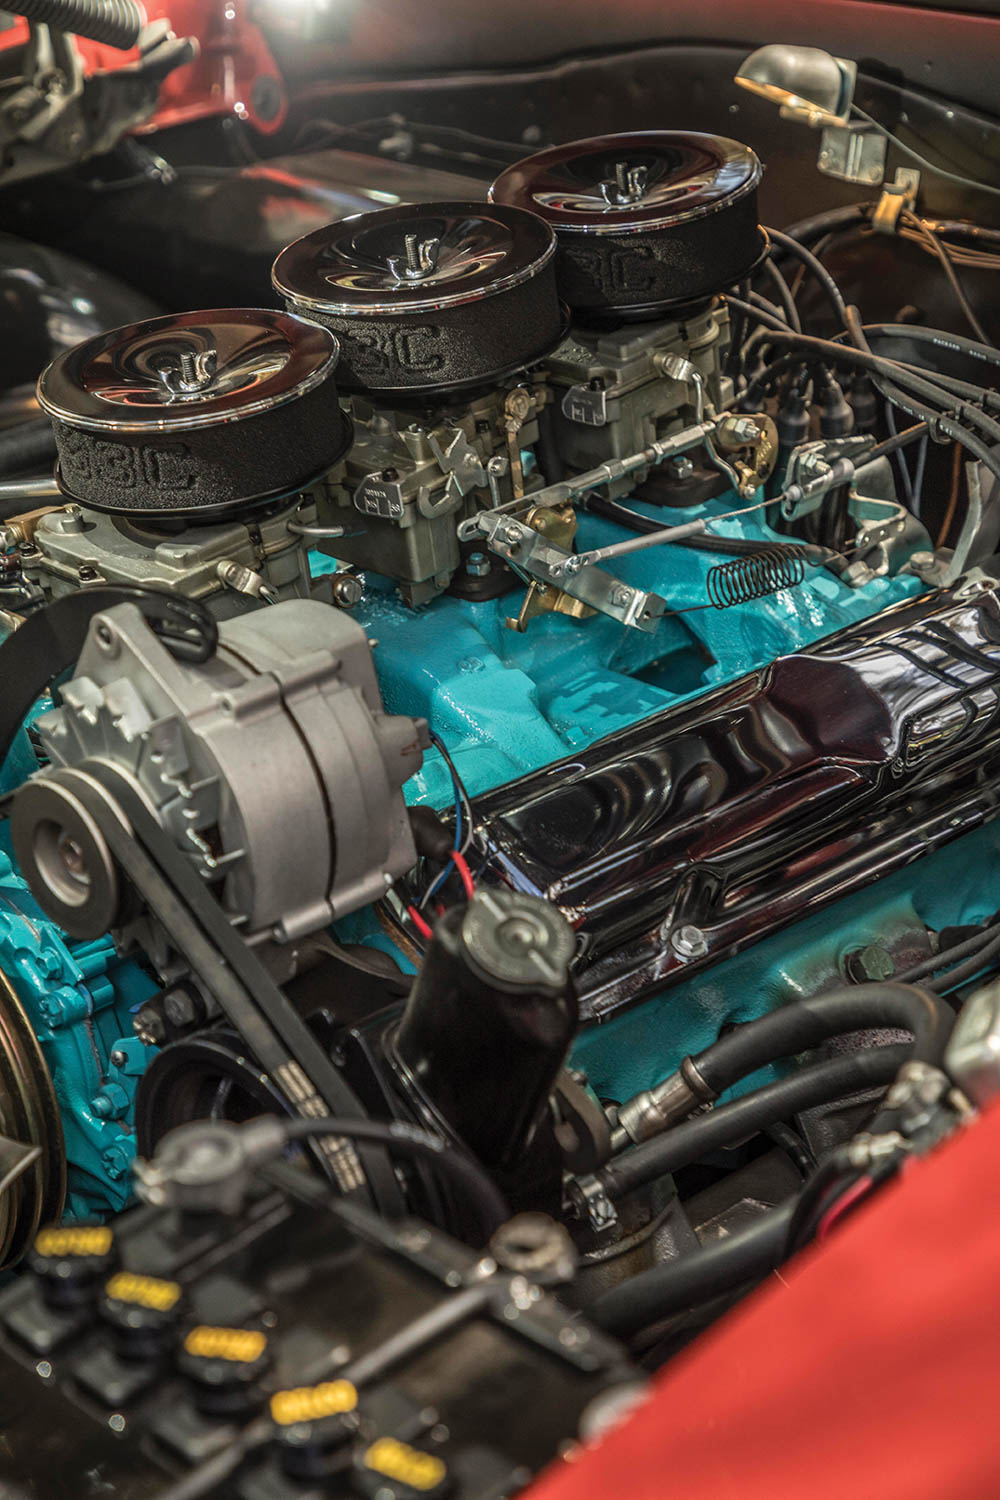 The GTO engine has a date-coded block and what Tenney Fairchild believes are the original heads. To fool C/D editors in 1964, Jim Wangers updated the casting numbers, and there was no way to tell the engine from a standard GTO mill.